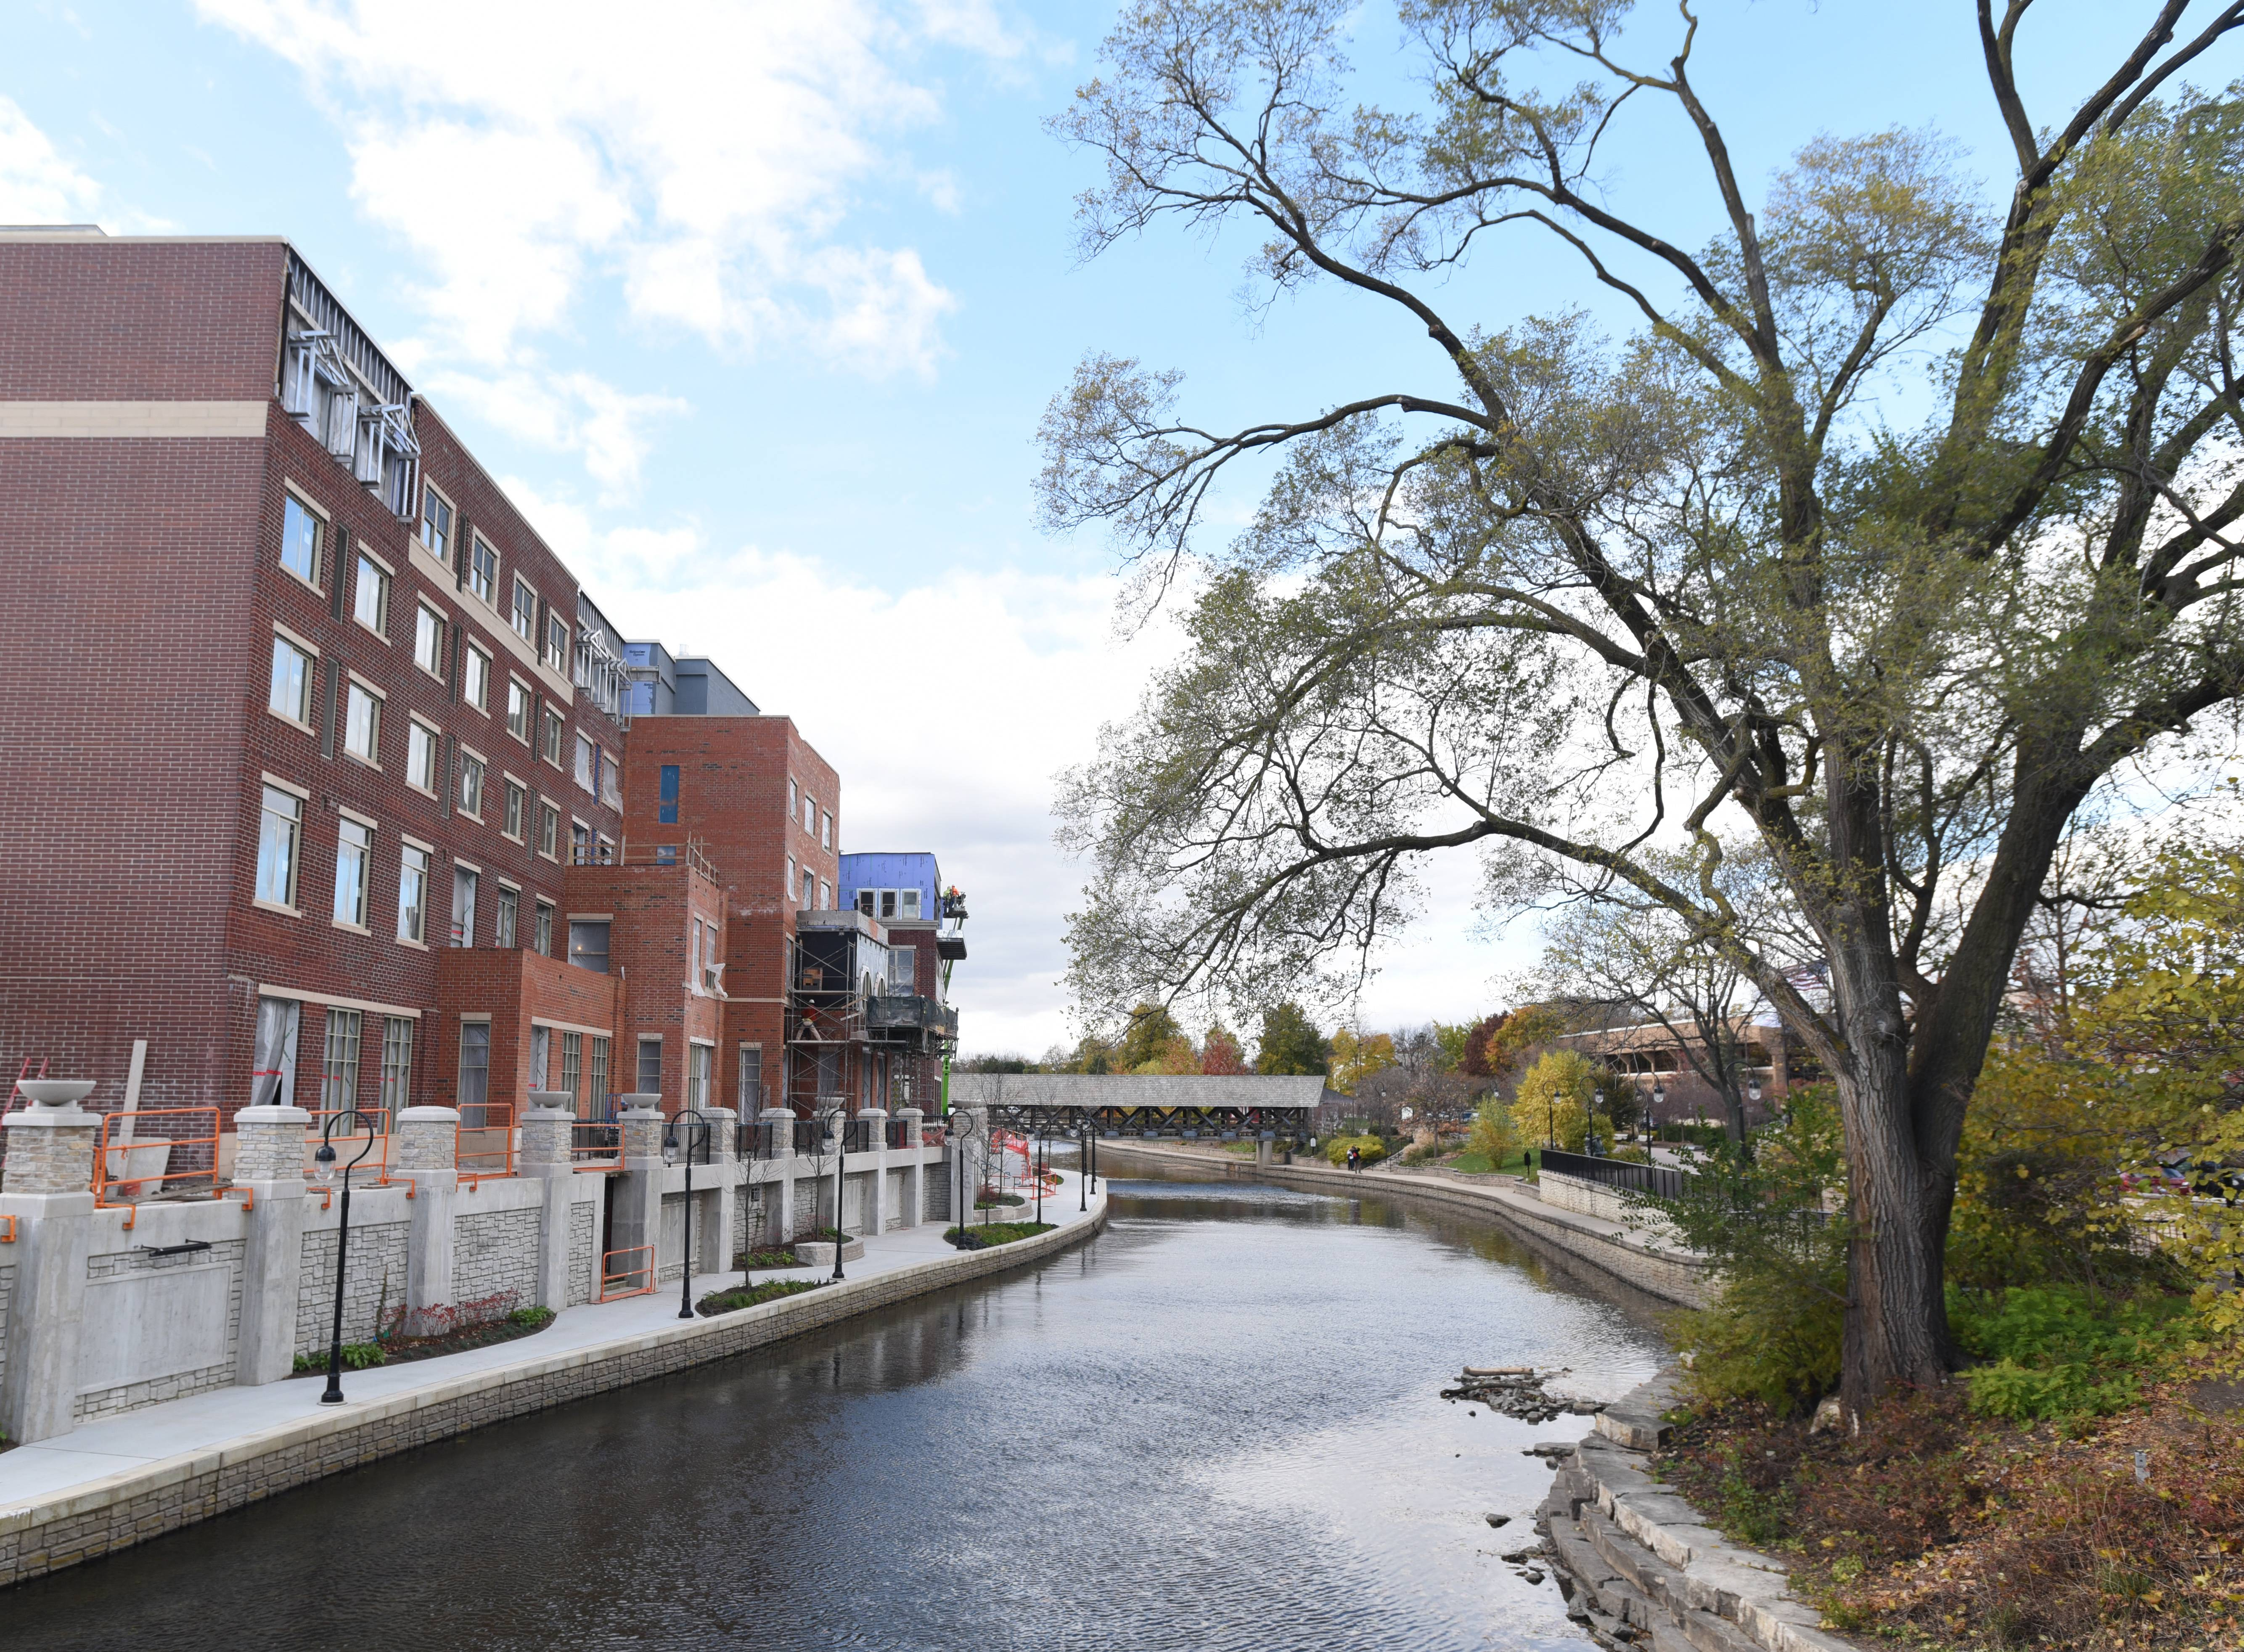 Rising from the south bank of the DuPage River in downtown Naperville is a $93 million hospitality destination for which the city has waited nearly a decade -- the Water Street District anchored by the Hotel Indigo Naperville Riverwalk.